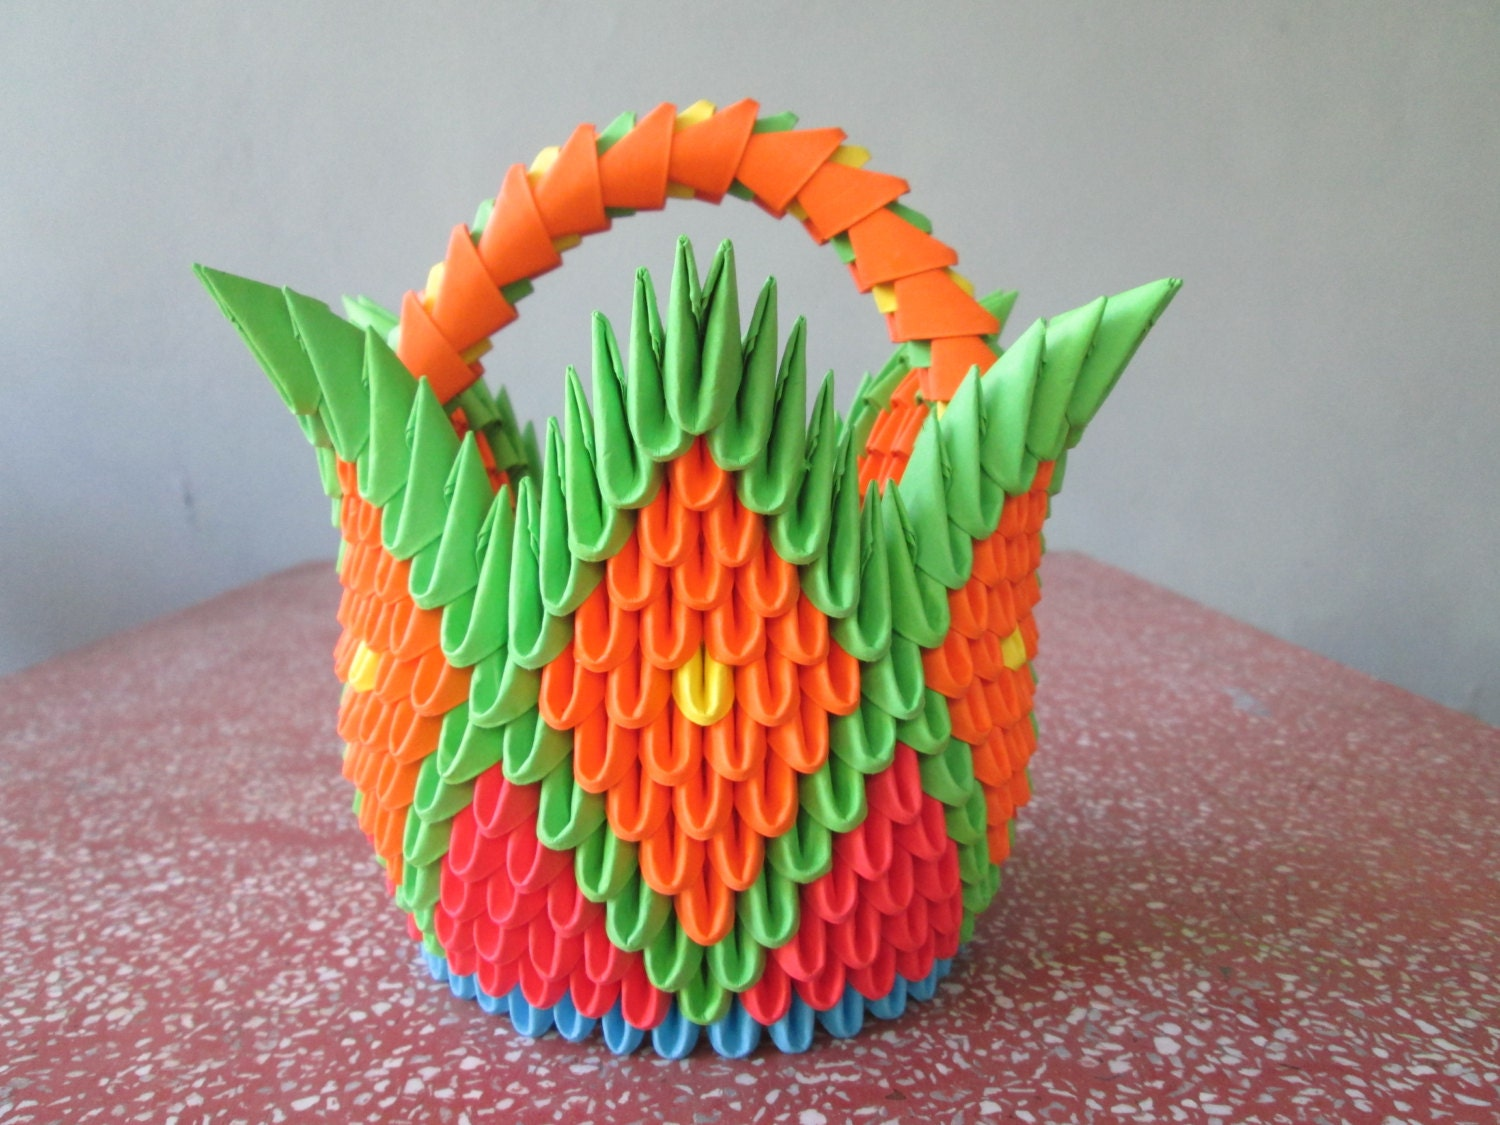 3d Origami Basket Only For 900 Usd Etsy